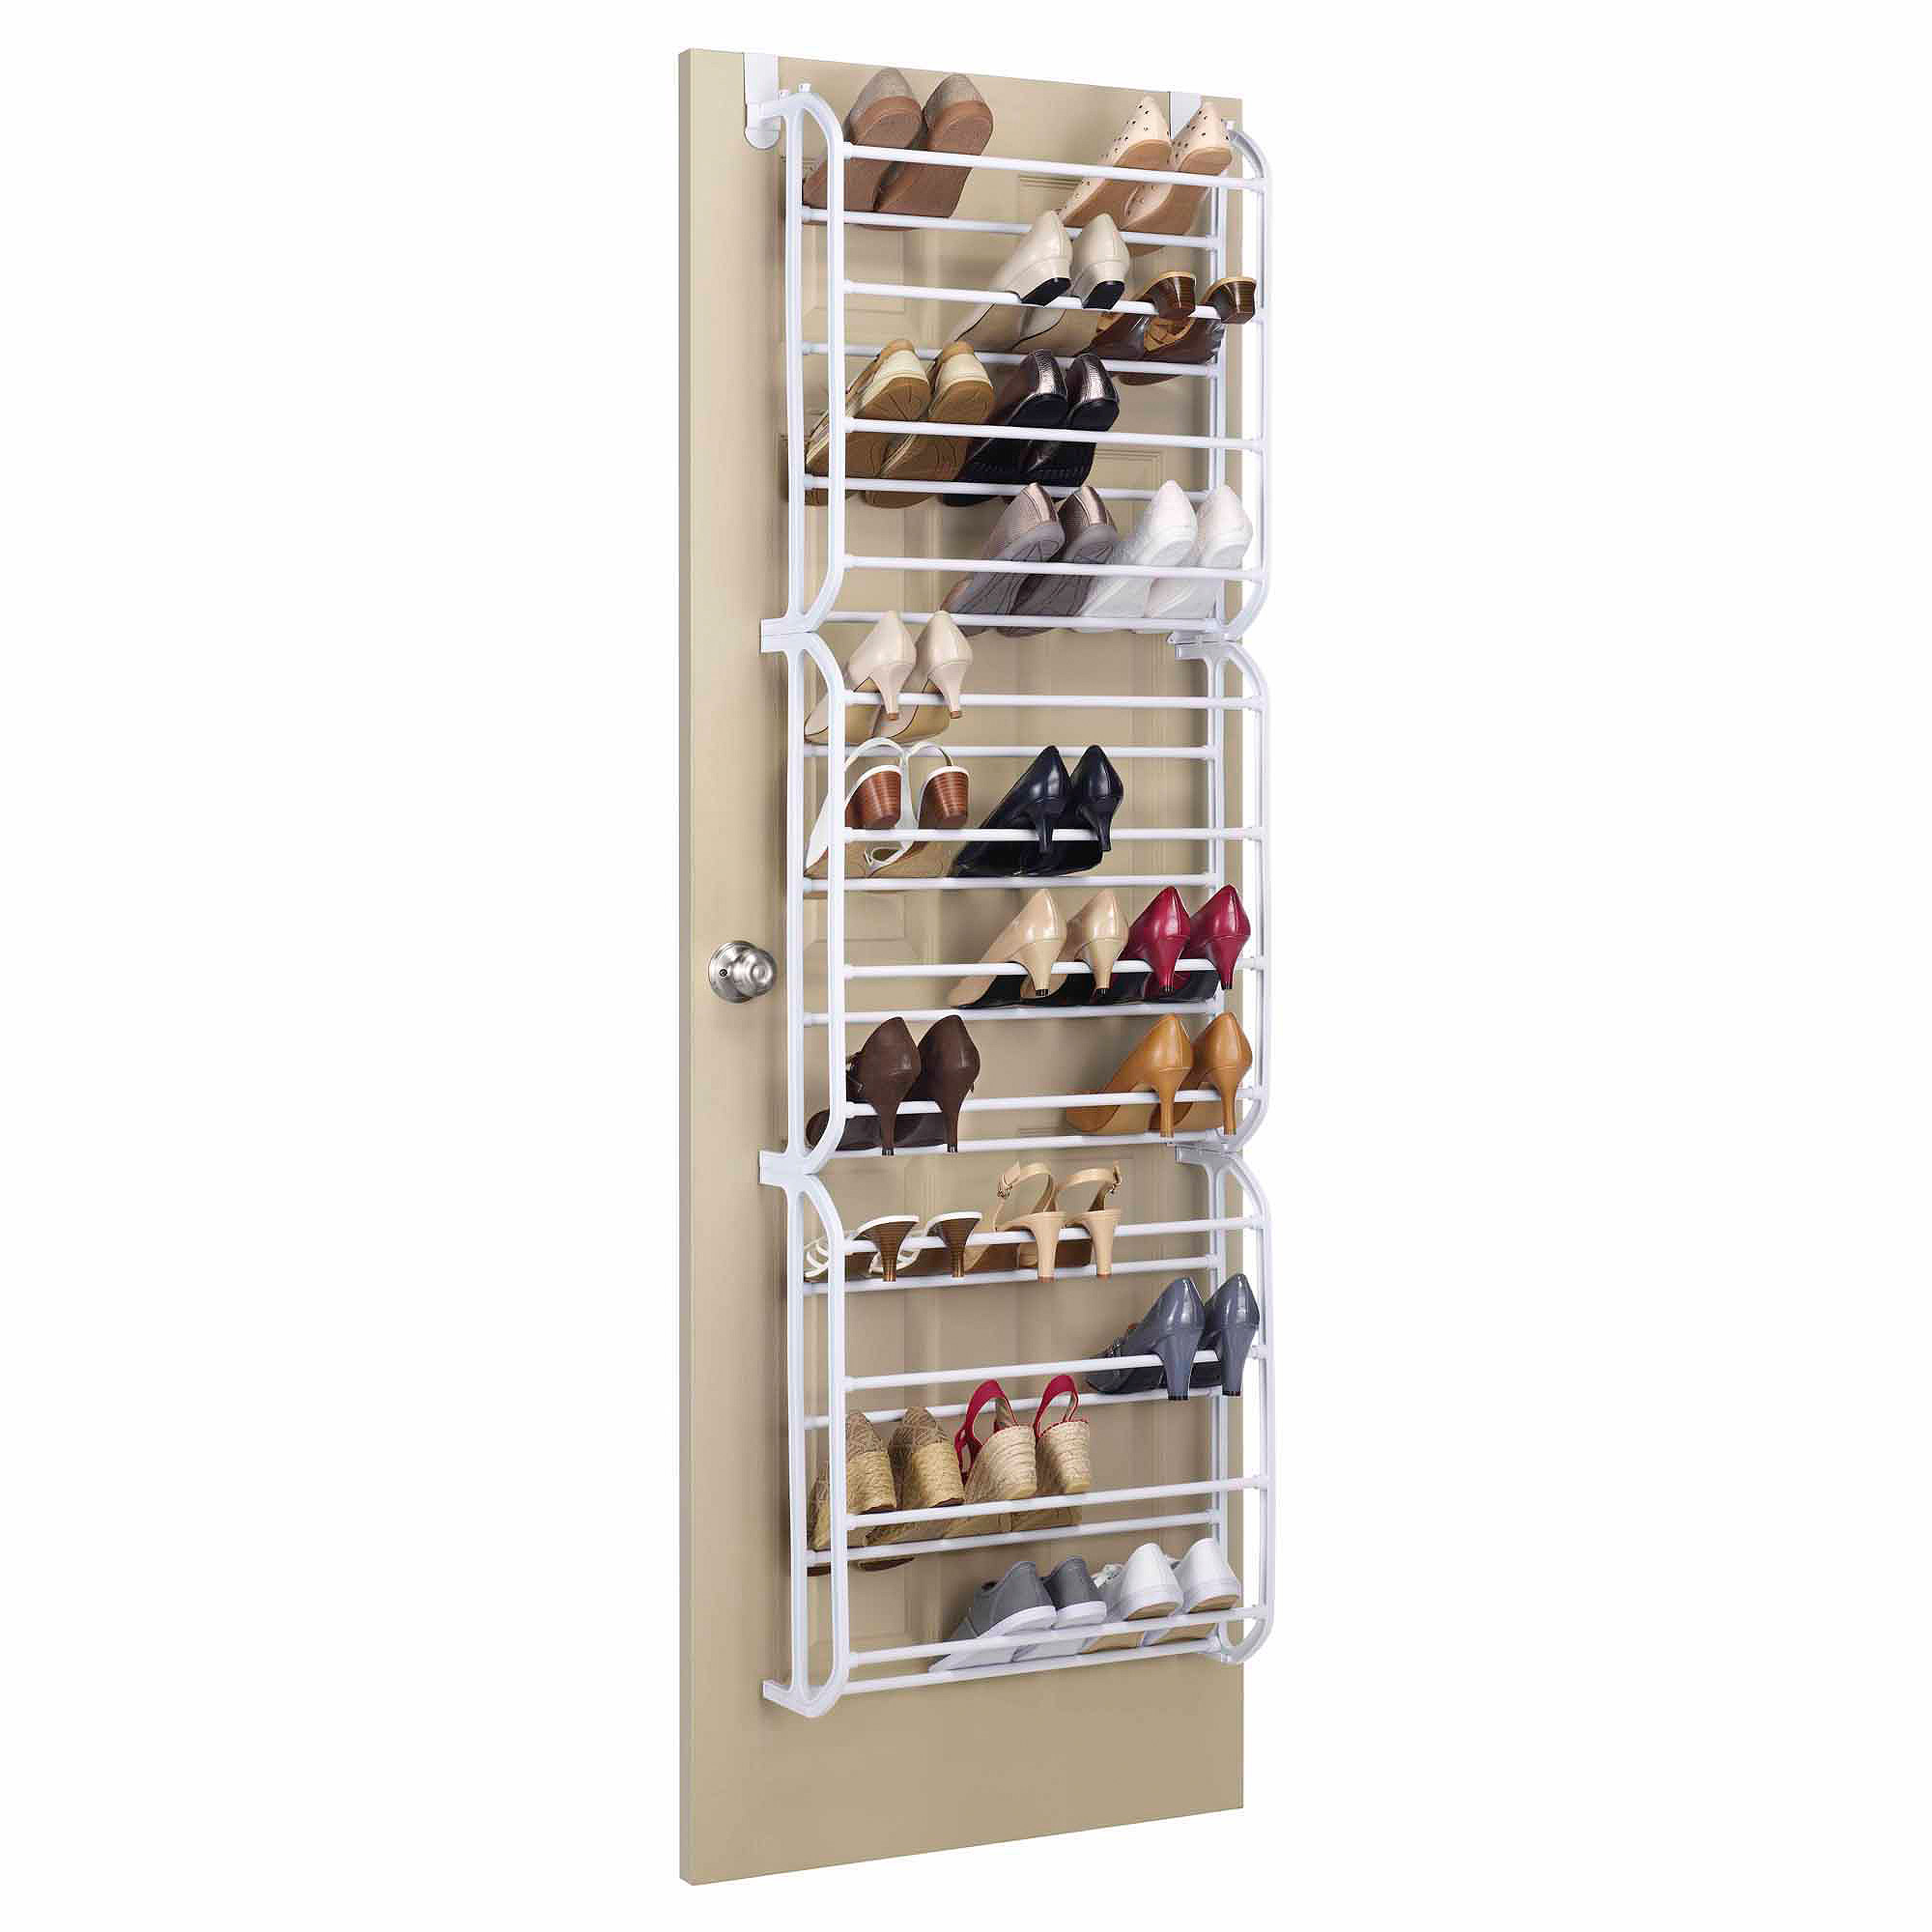 Whitmor 36-Pair Over the Door Shoe Rack White  sc 1 st  Walmart & Door Shoe Racks